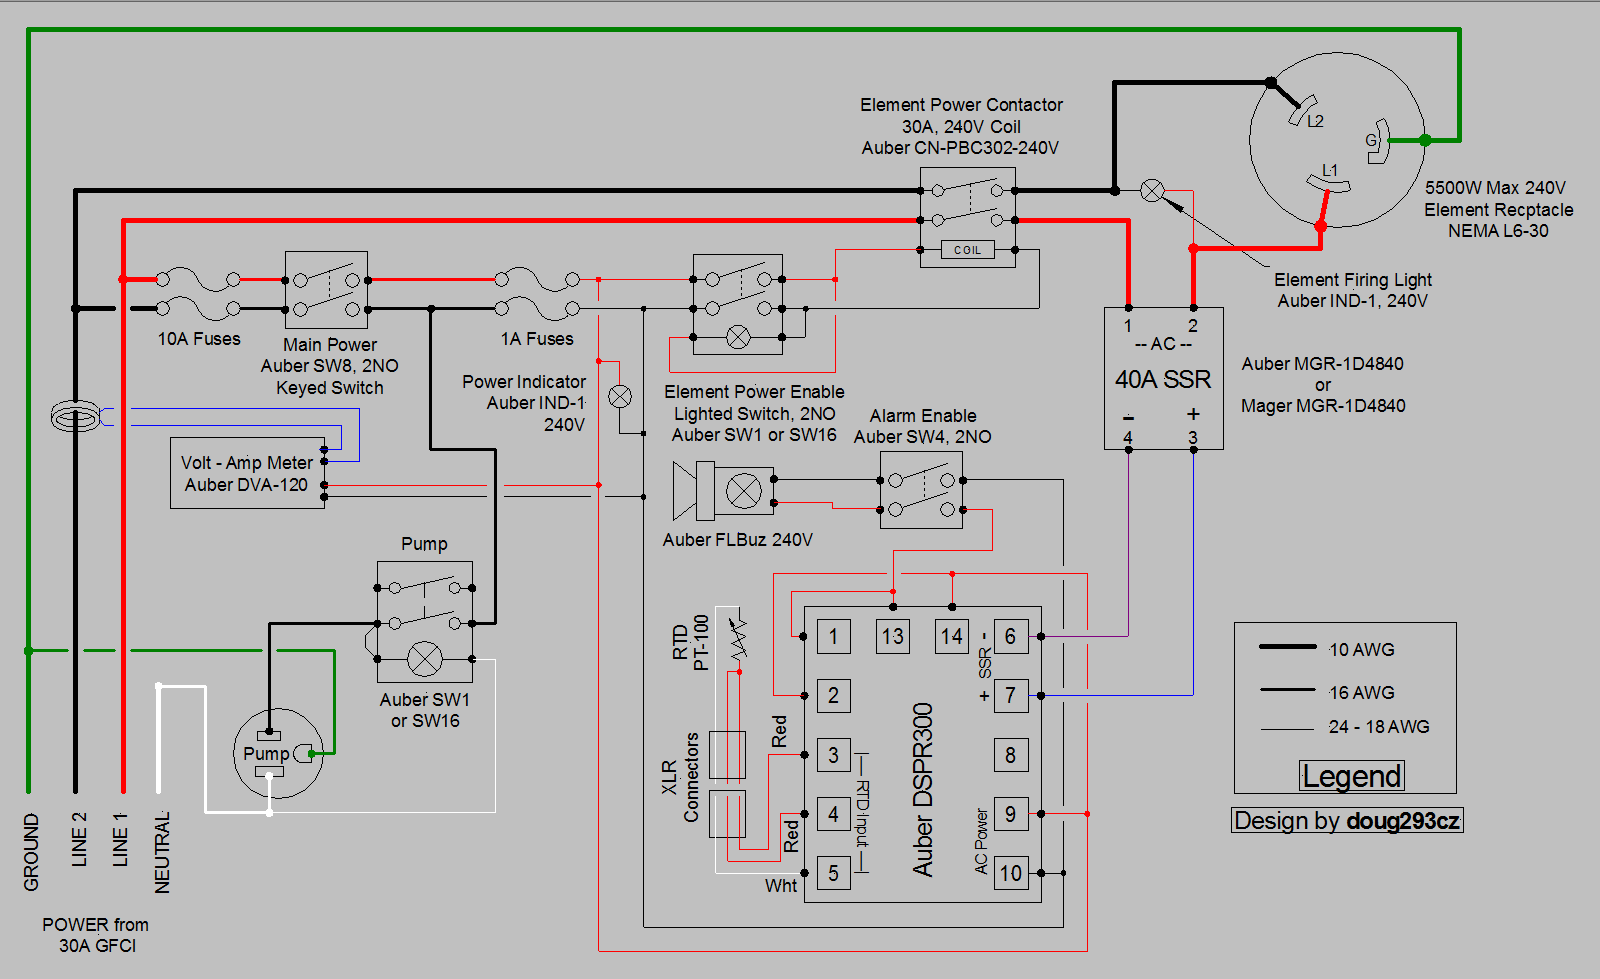 Colorful Nema L6 30 Wiring Diagram Image - Everything You Need to ...